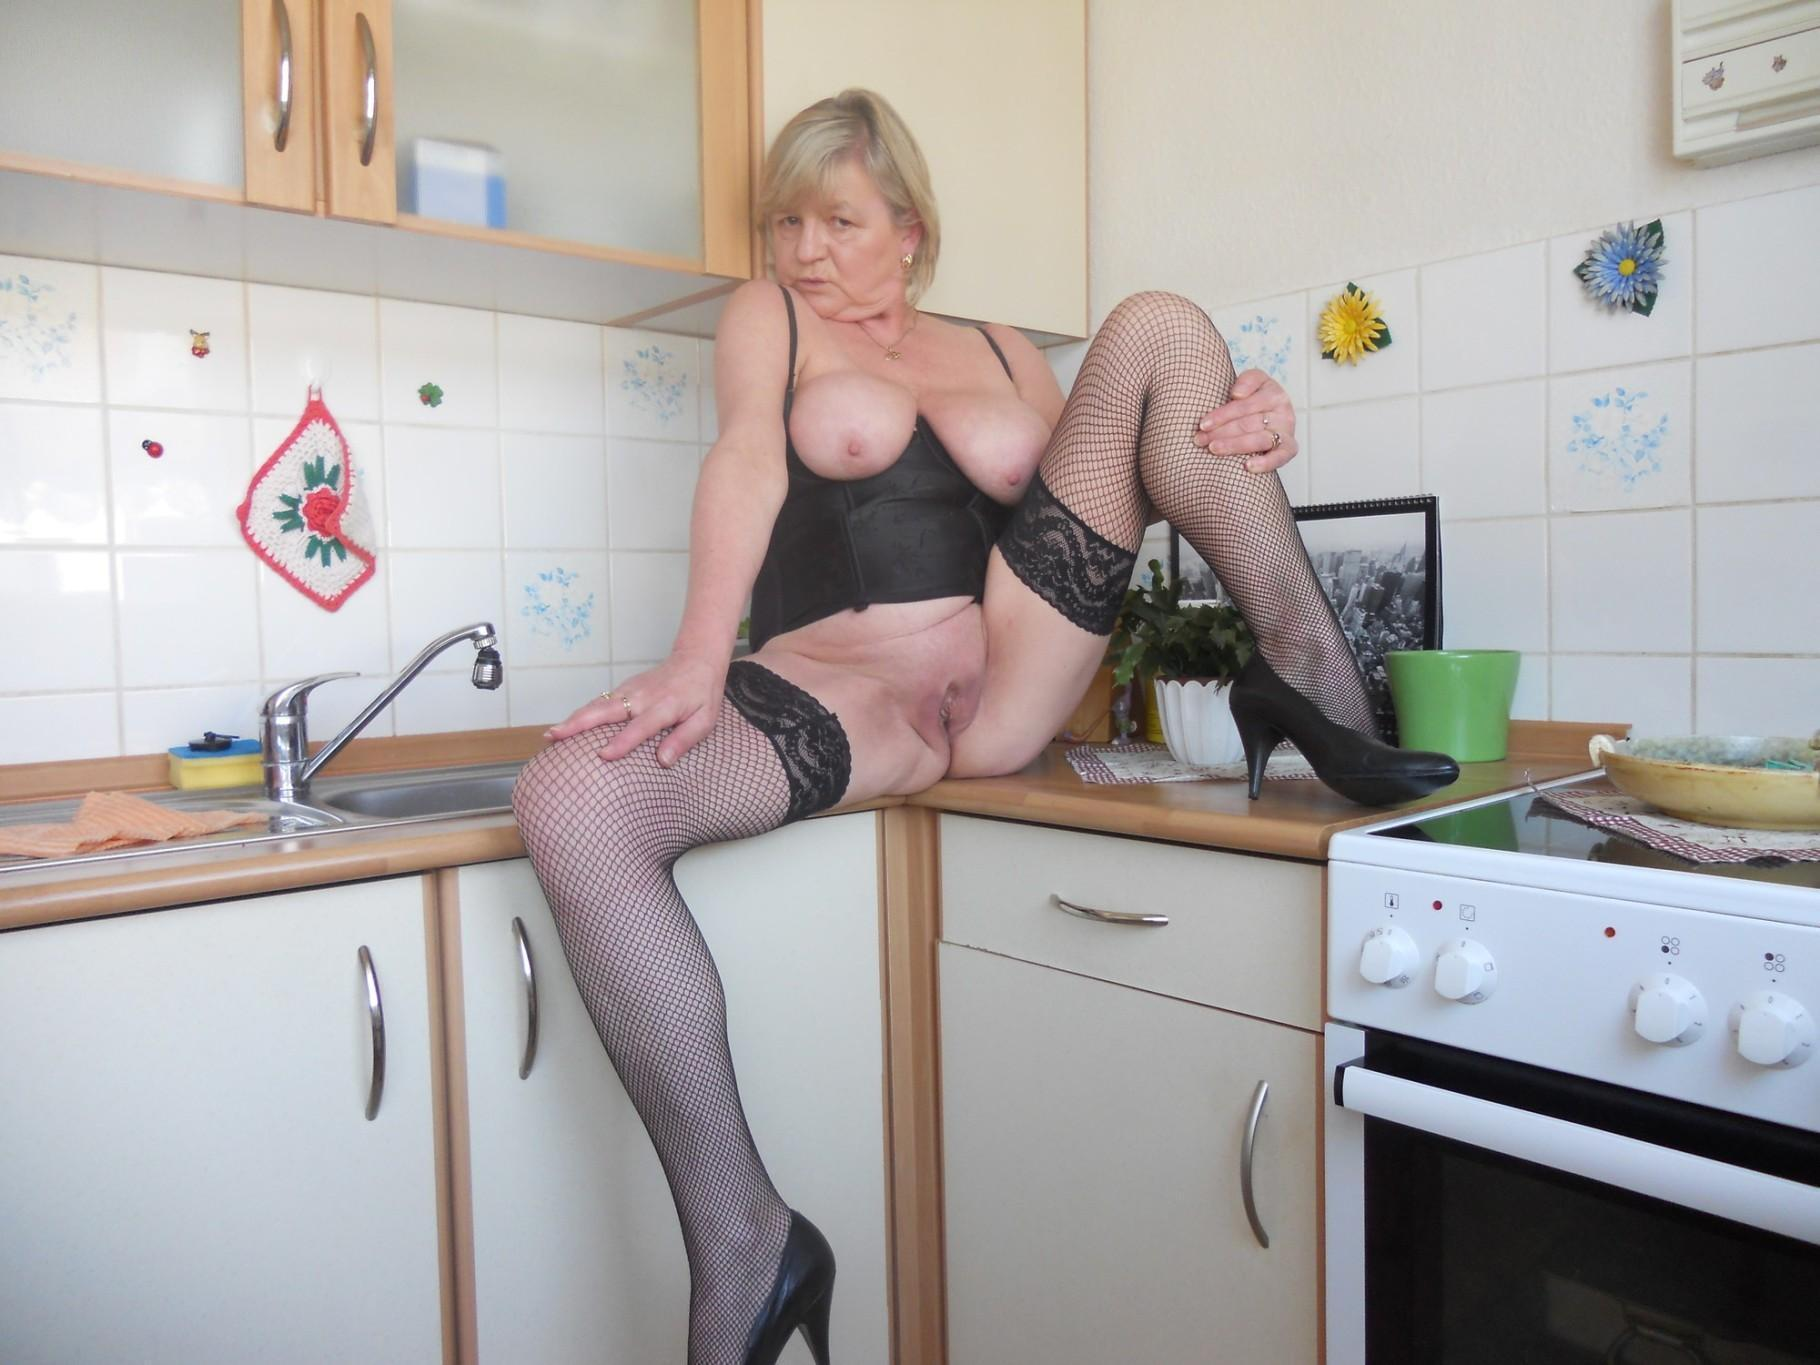 Blonde old women with shaved pussy strips and shows her cunt in the kitchen. Hot grannie exposes her saggy tits and bald twat